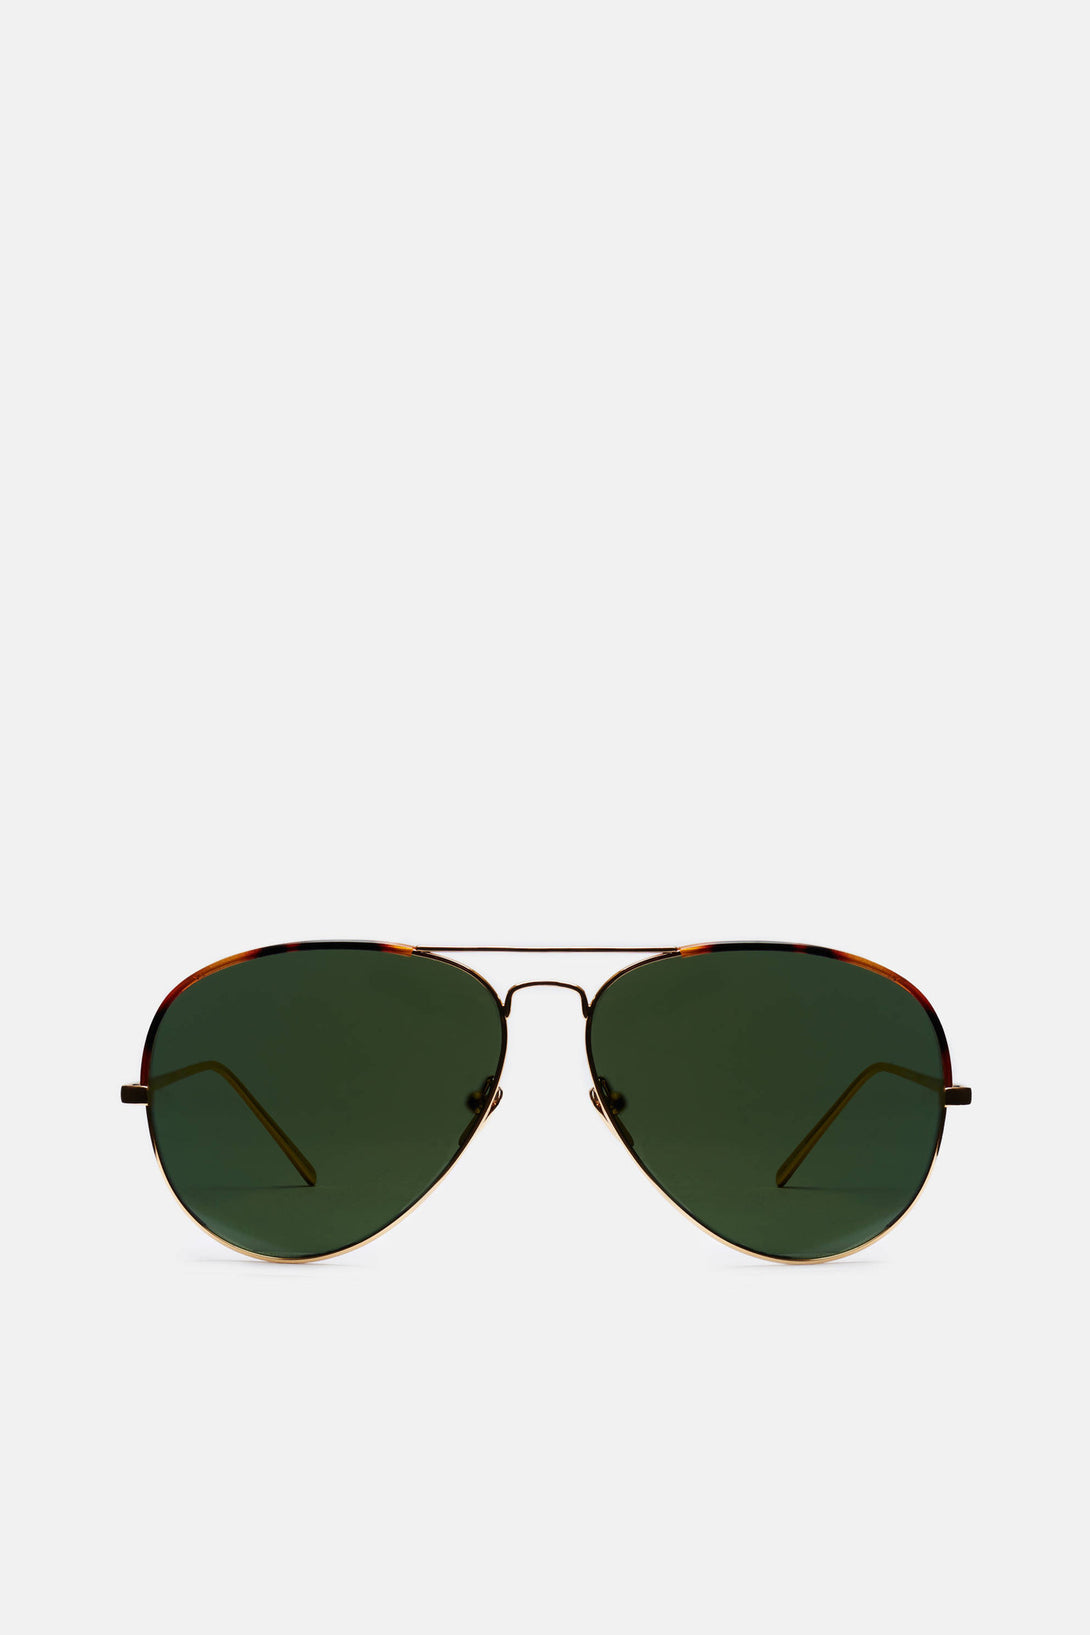 Windsor Rim Aviators - Yellow Gold